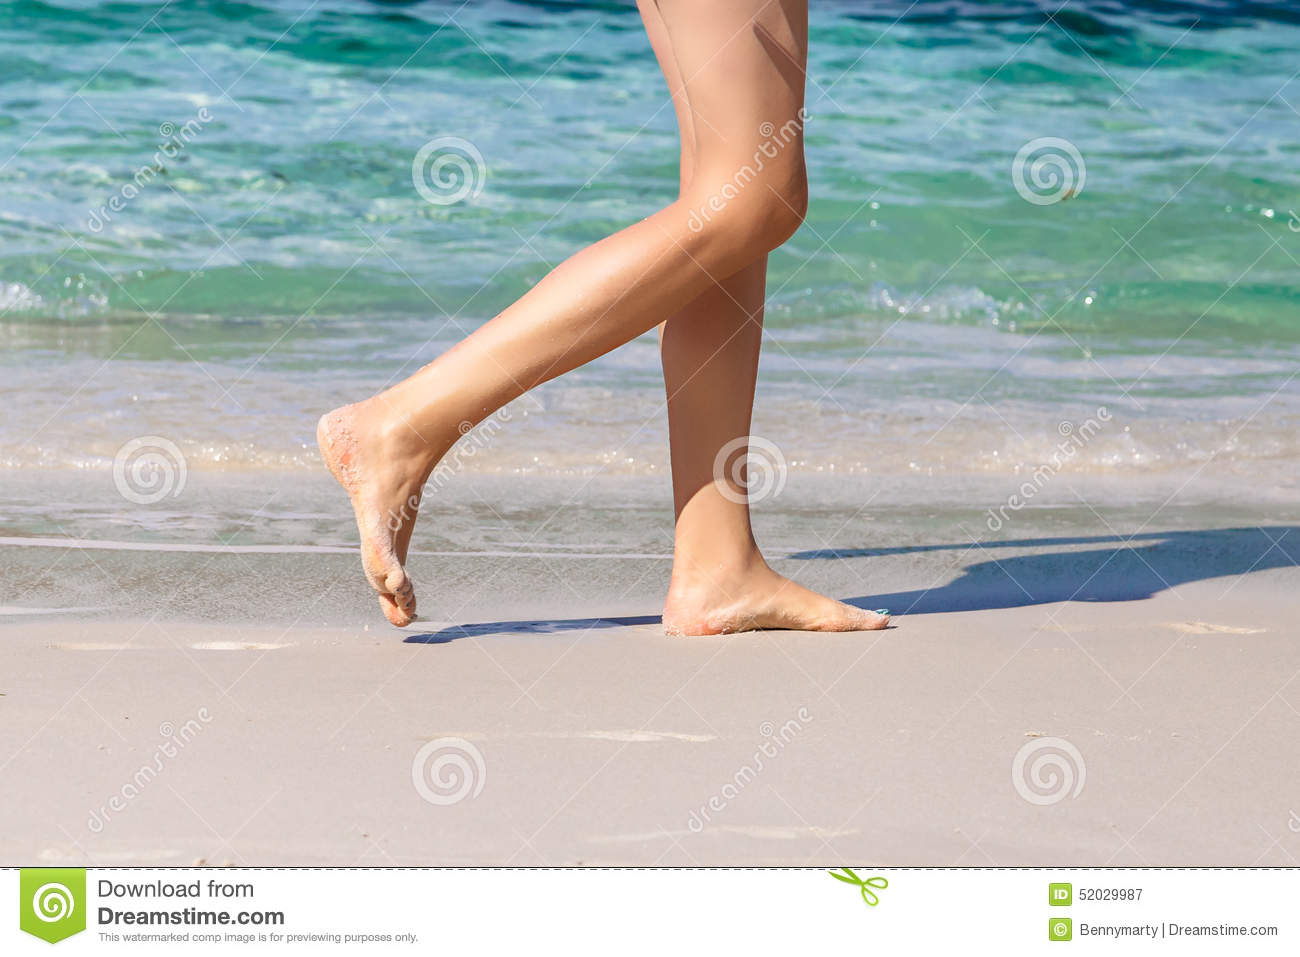 walking on the beach naked